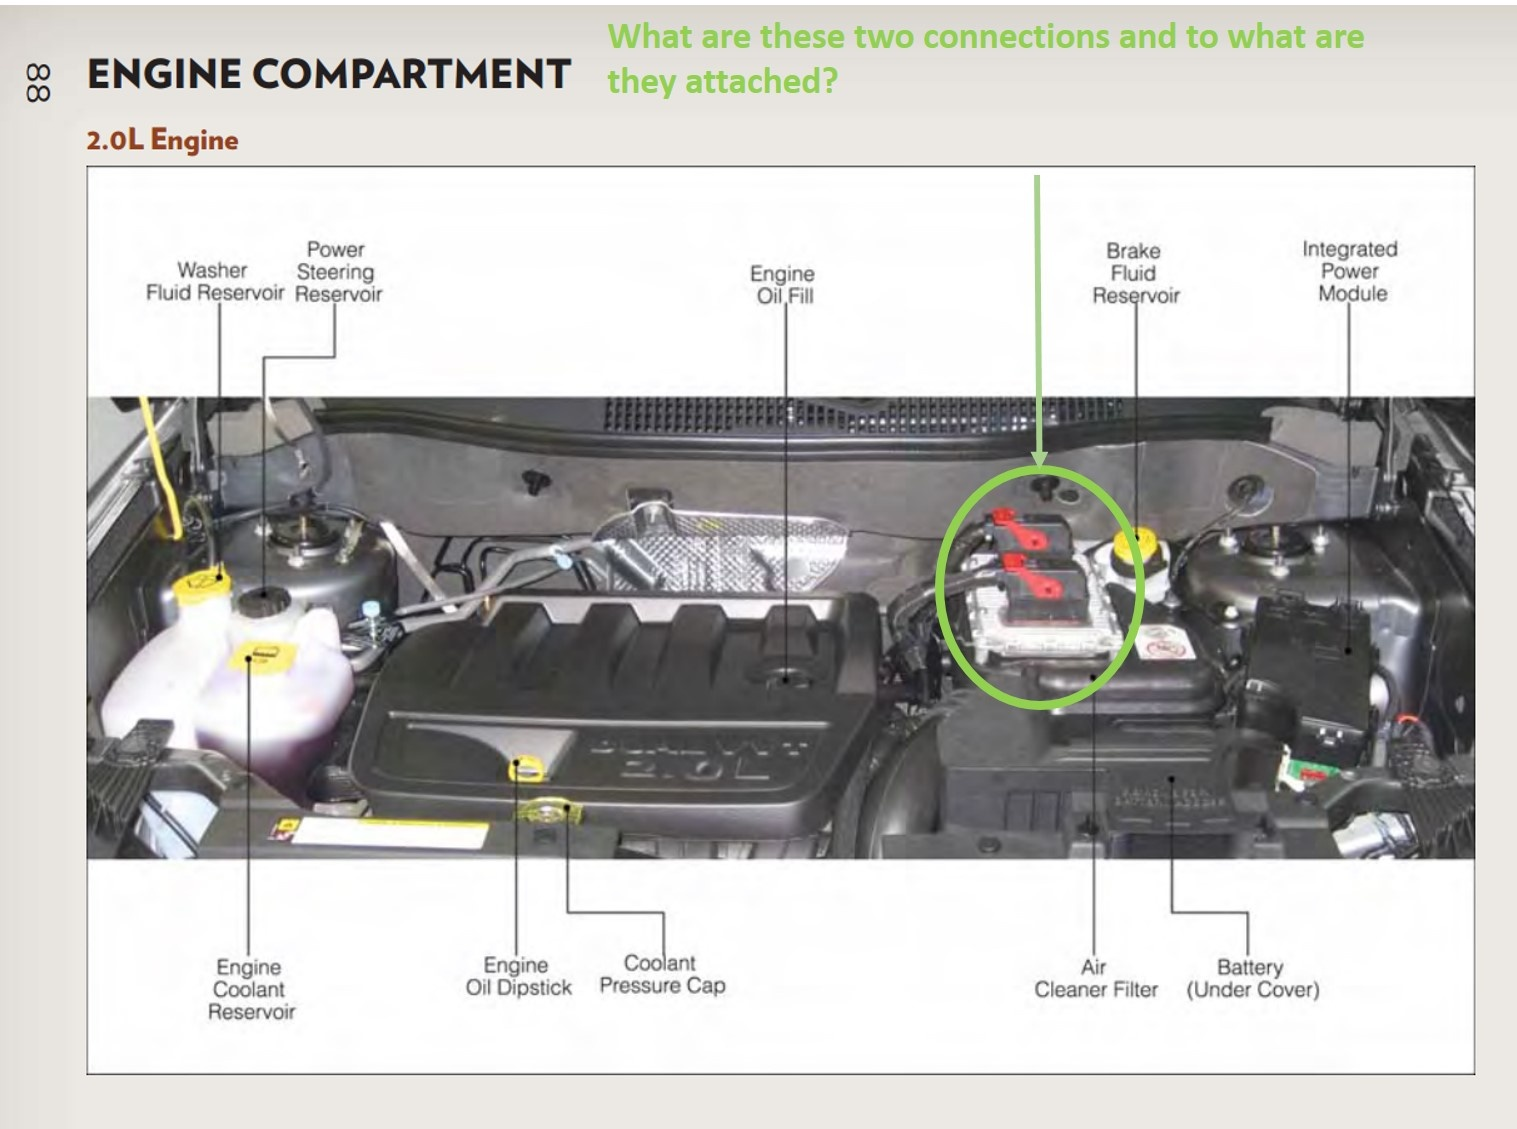 what are the connections under the hood (please see attached picture)?